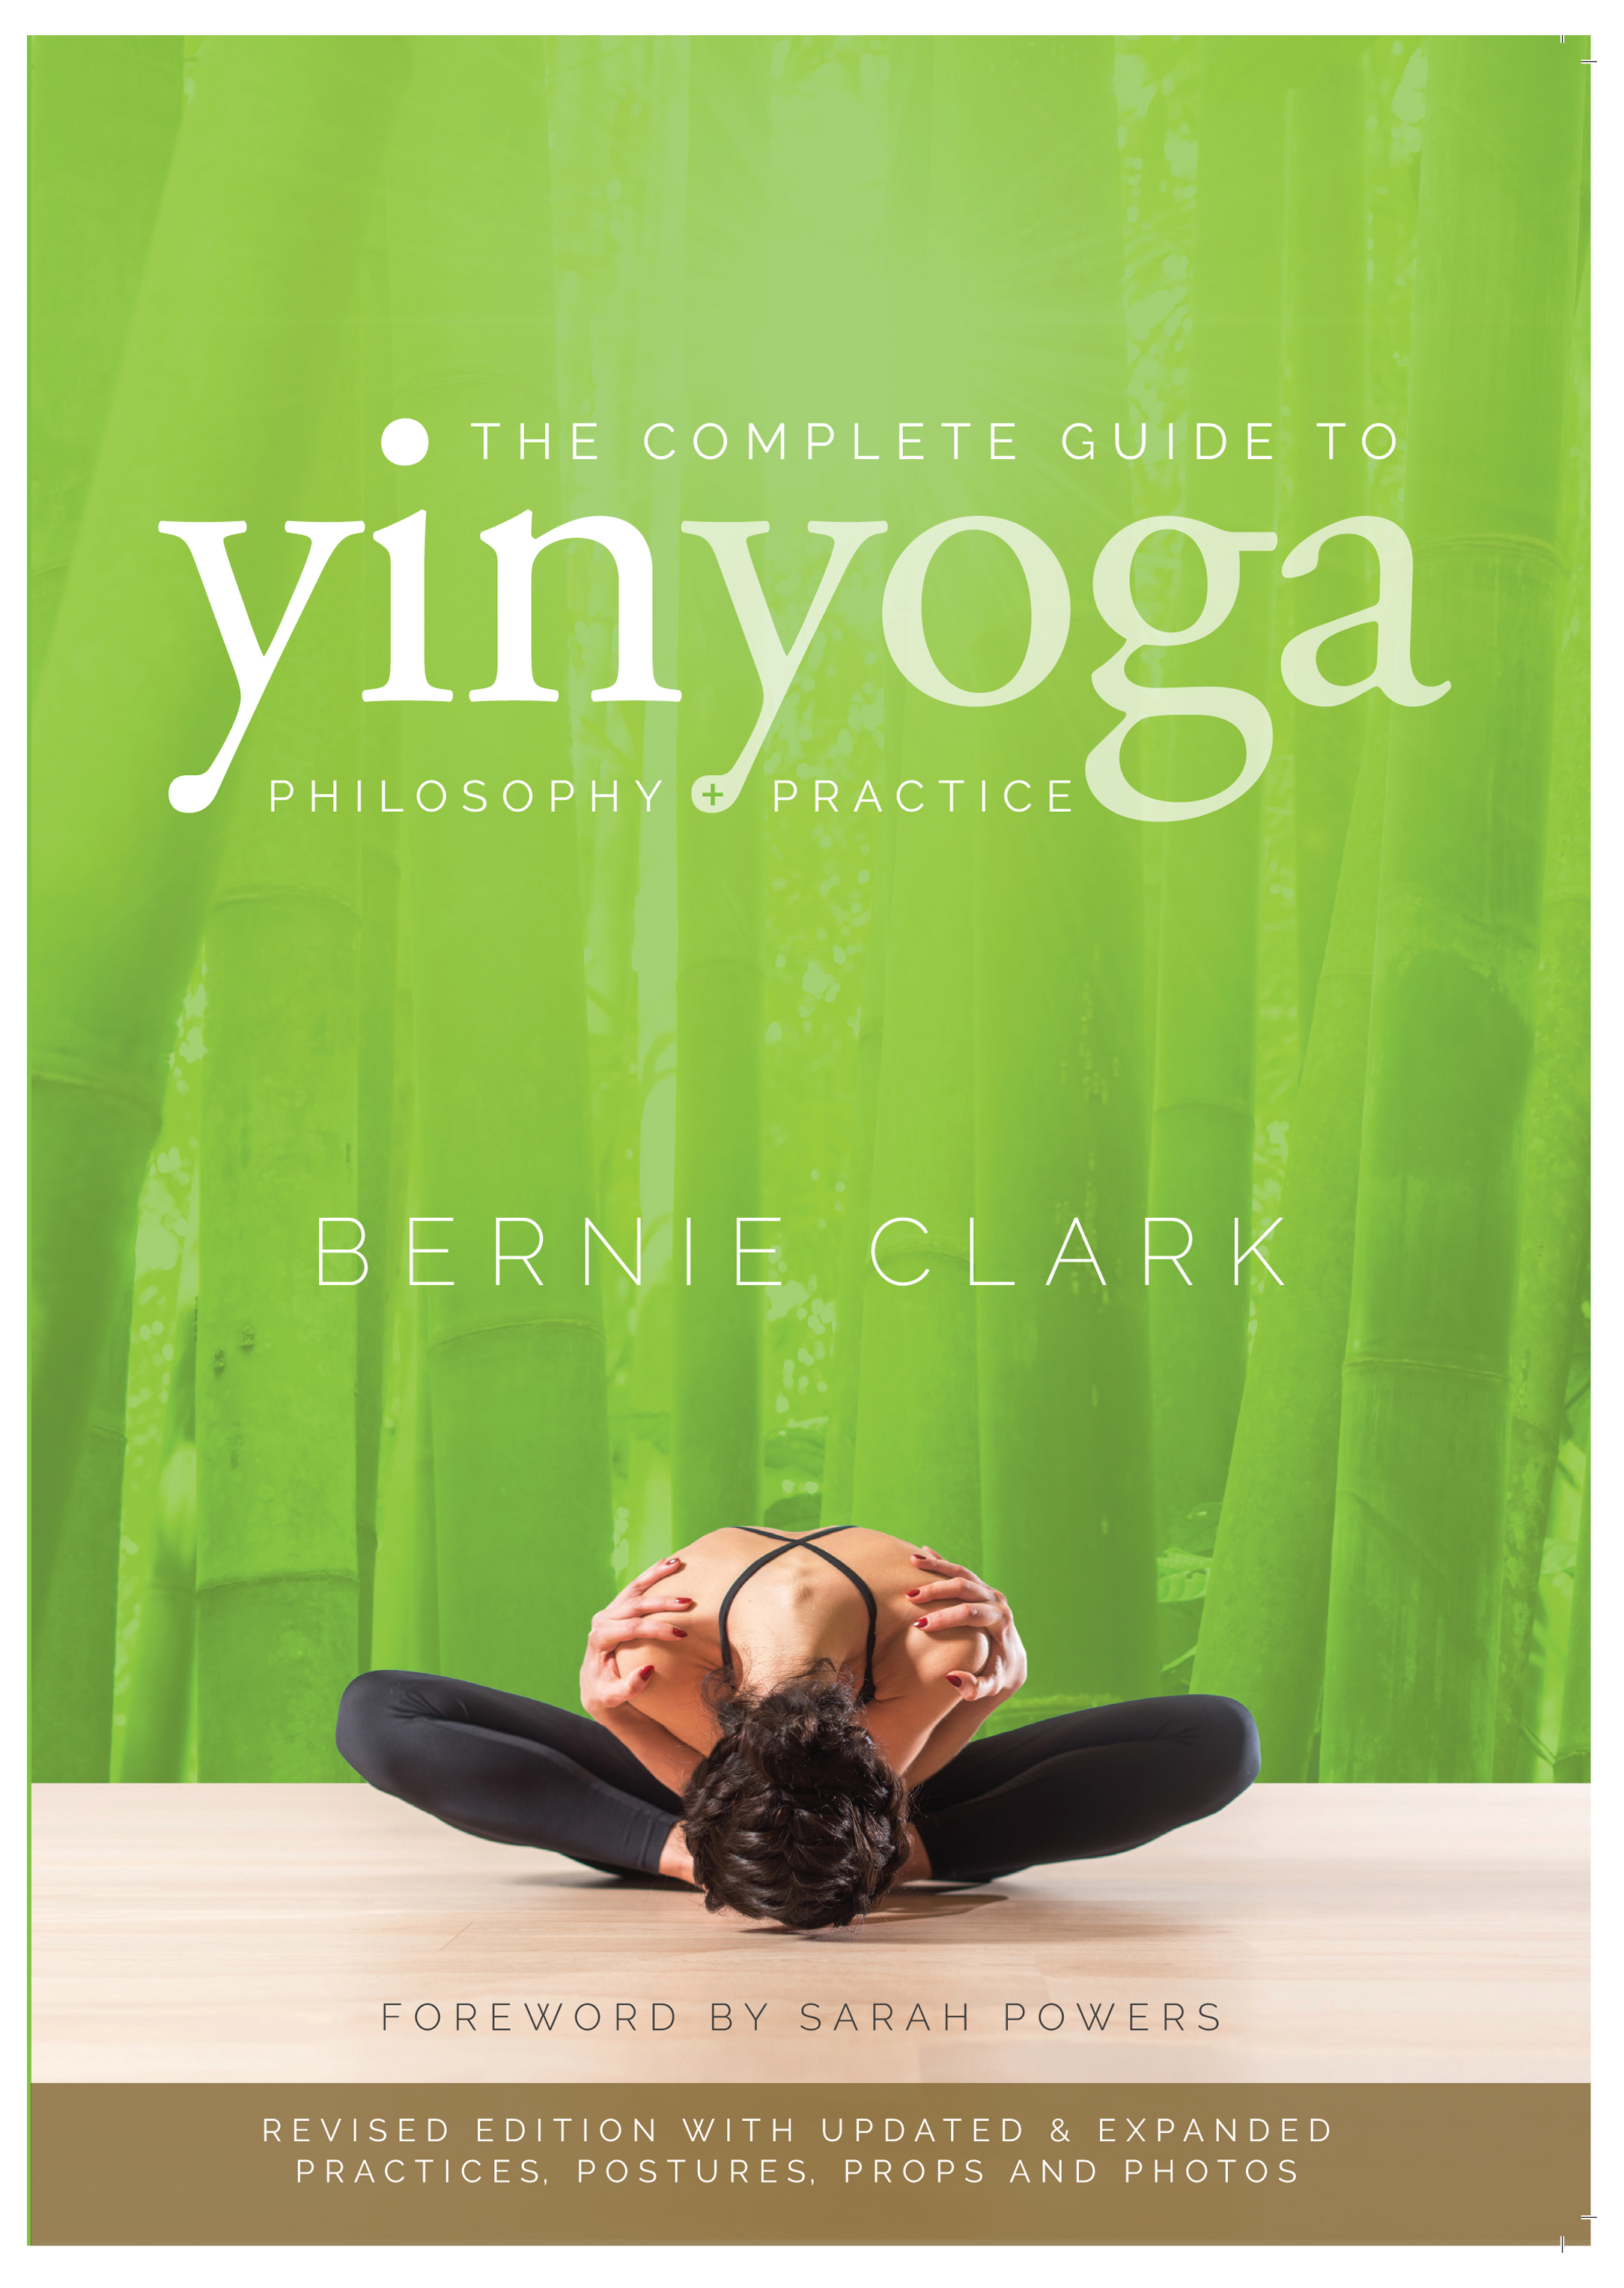 complete guide to yin yoga